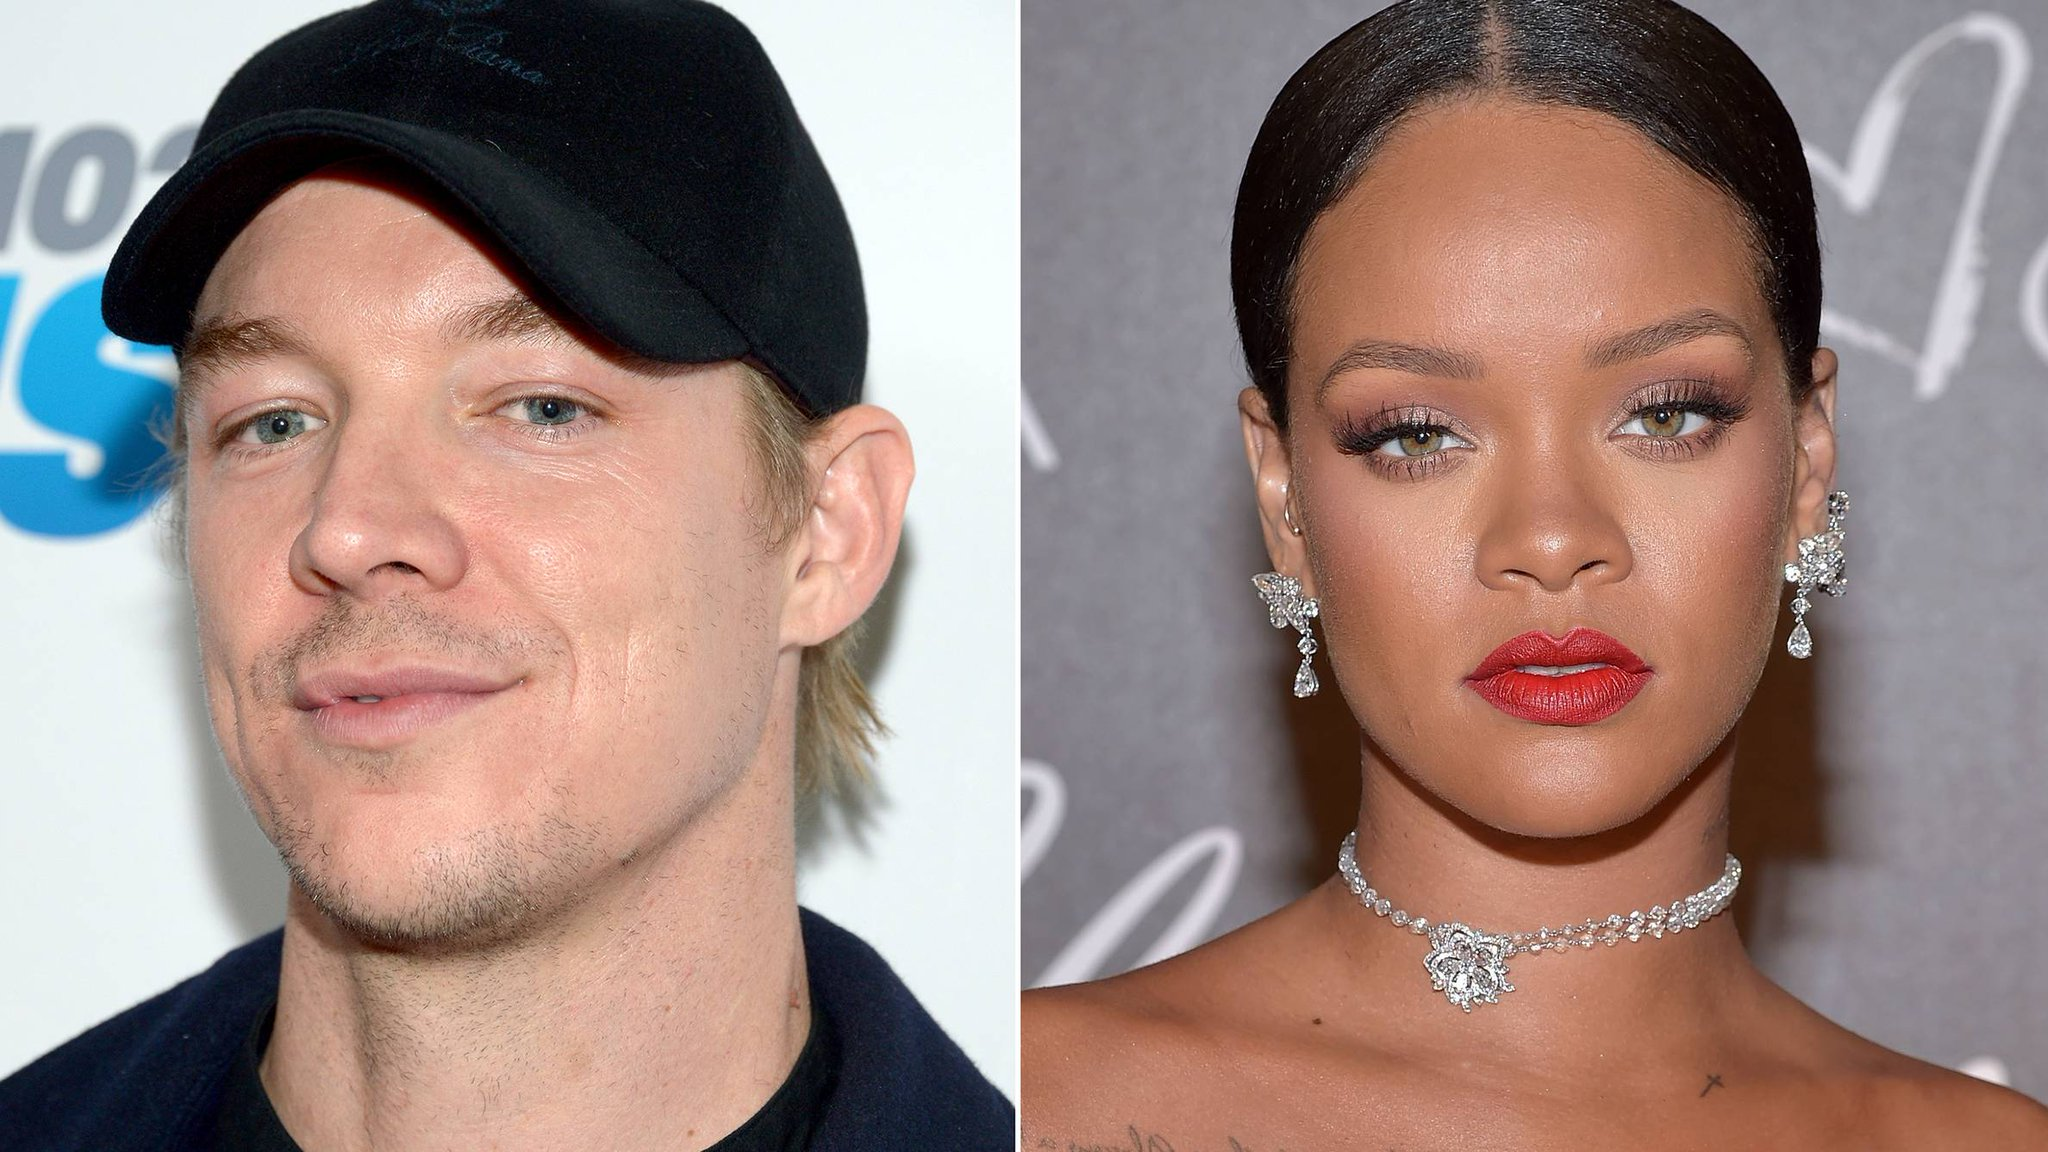 Rihanna responds to Diplo's comments with a hilarious Instagram post: https://t.co/tMj0FUl3oo https://t.co/dxxC6yoiRH